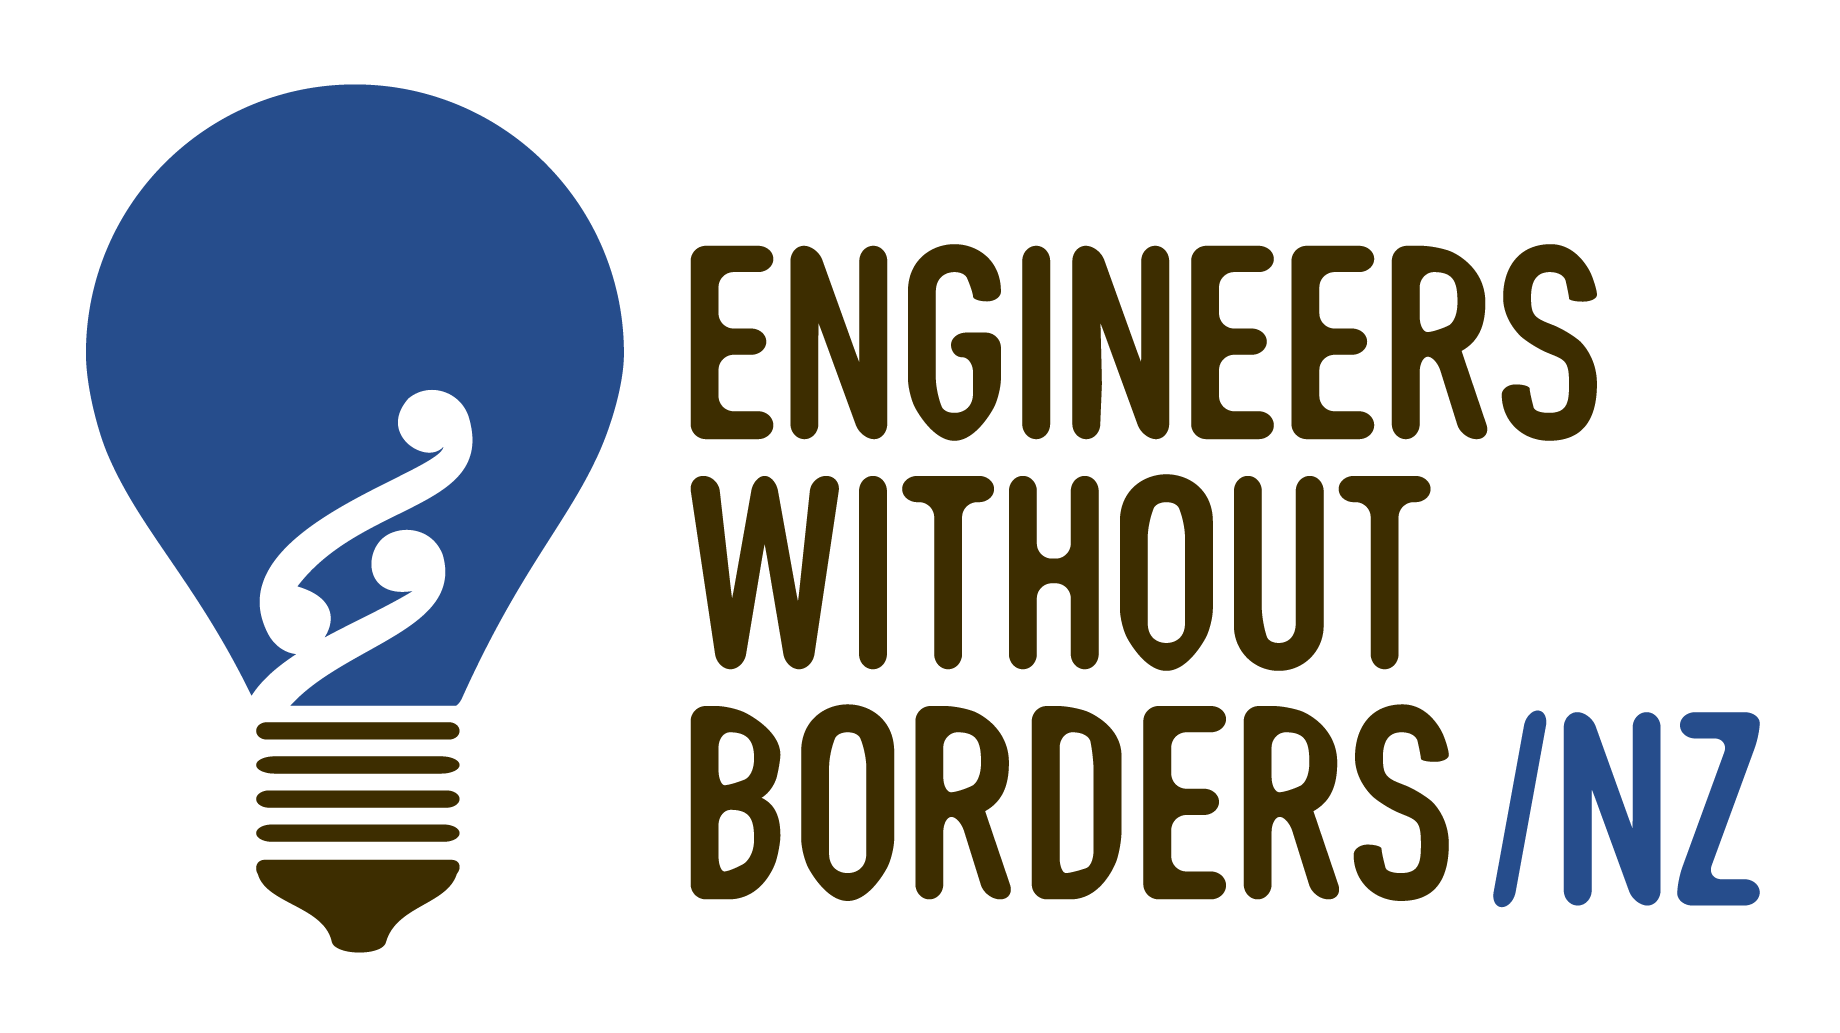 The roles and challenges of engineers without borders